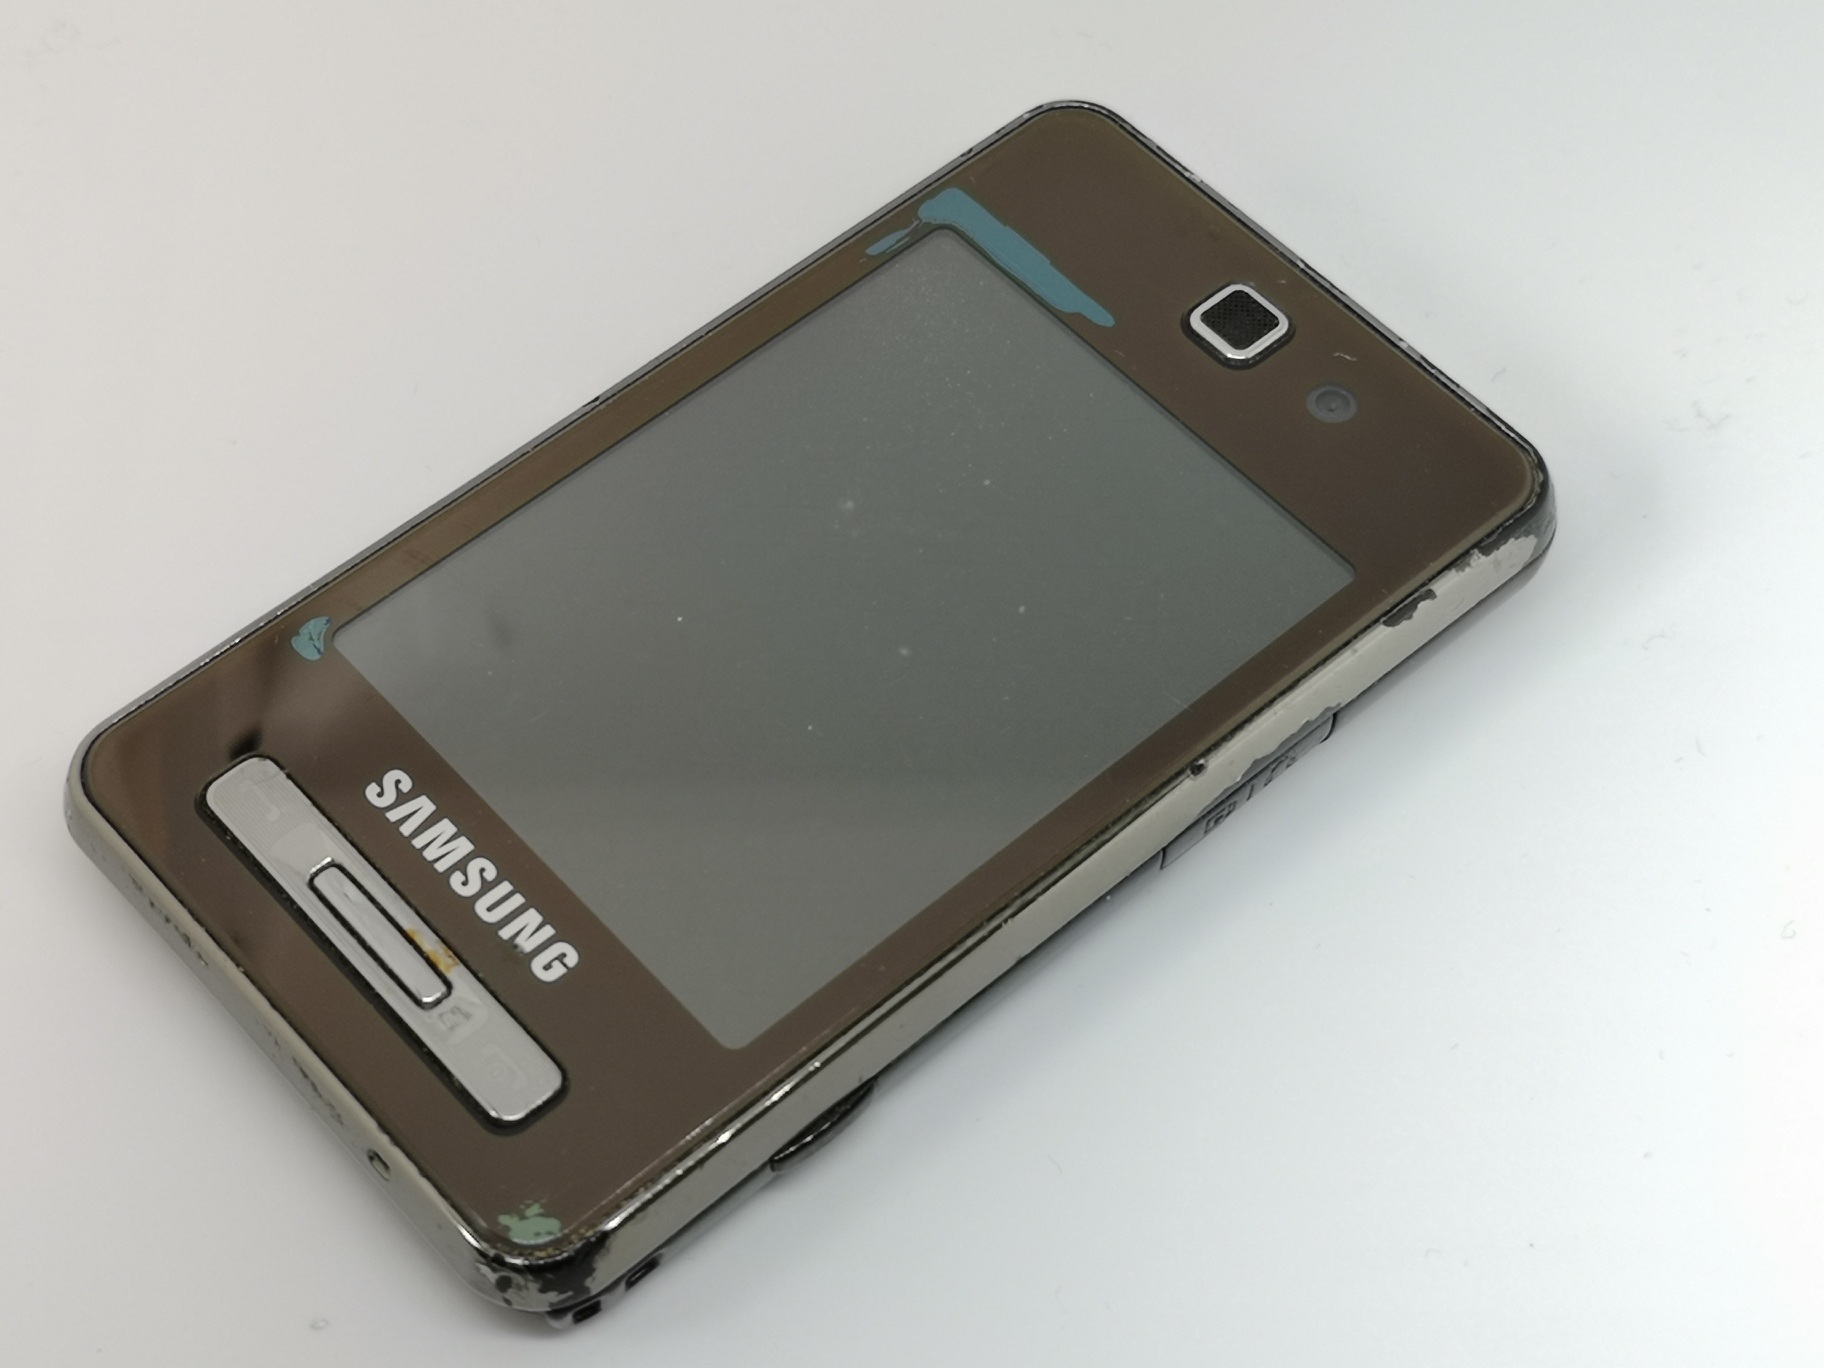 Samsung F480 Review - Tocco Phone Hits the Mainstream